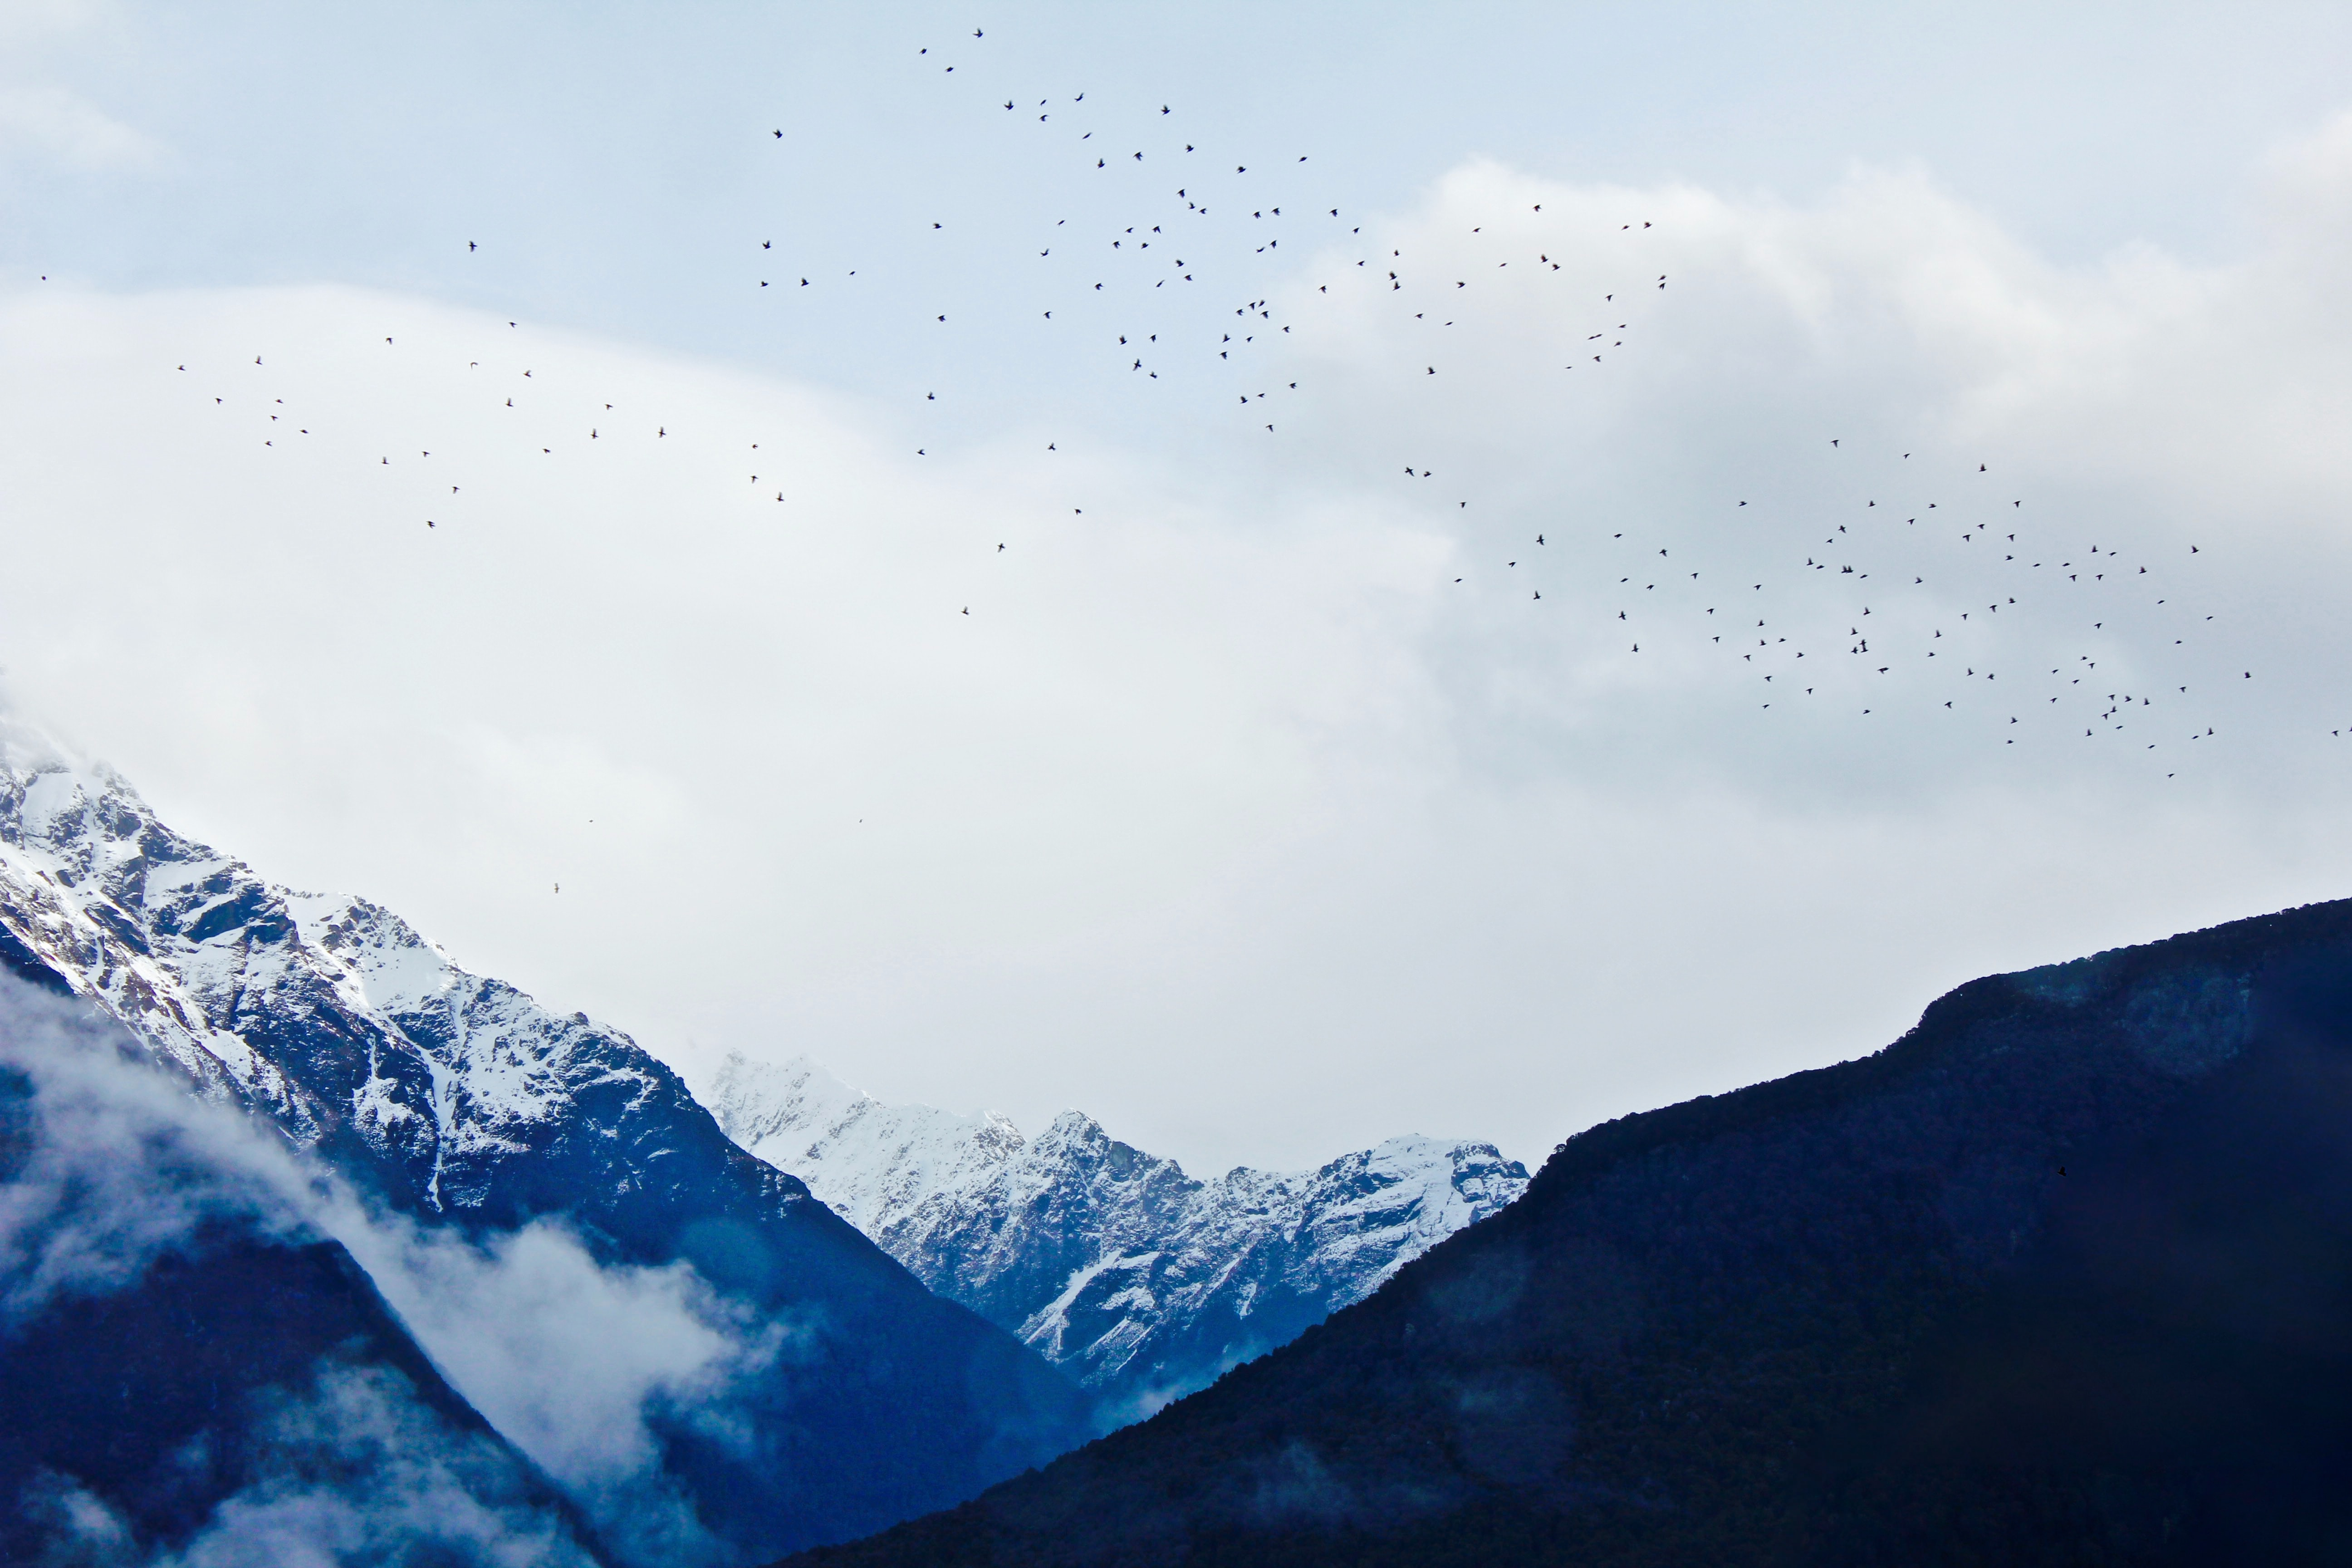 flock of birds flying above snow covered mountain during daytime